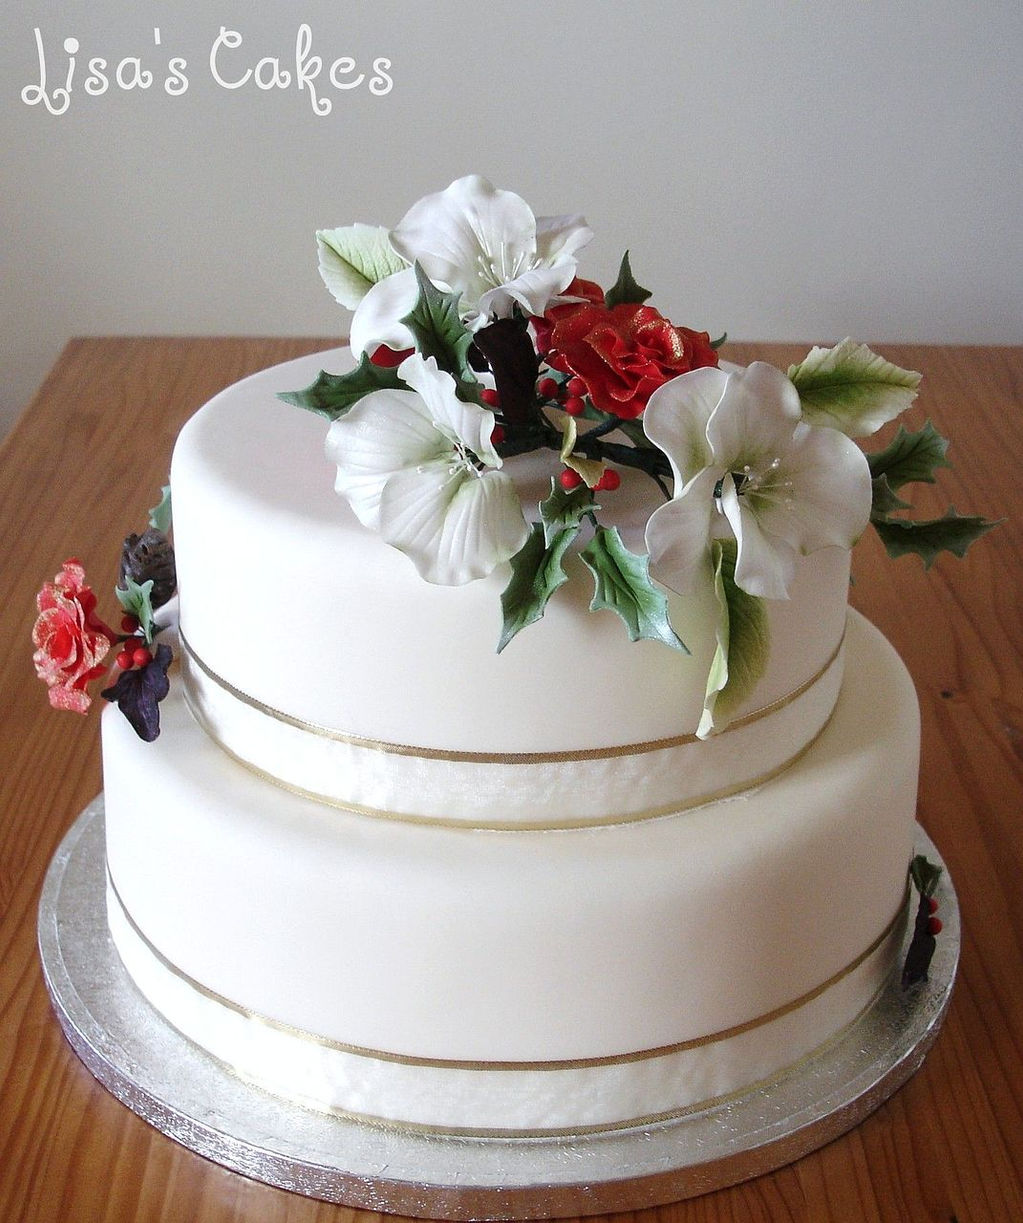 Christmas Cake Decorations Flowers: Lisas Cakes.Speciality Cakes And Cupcakes For All